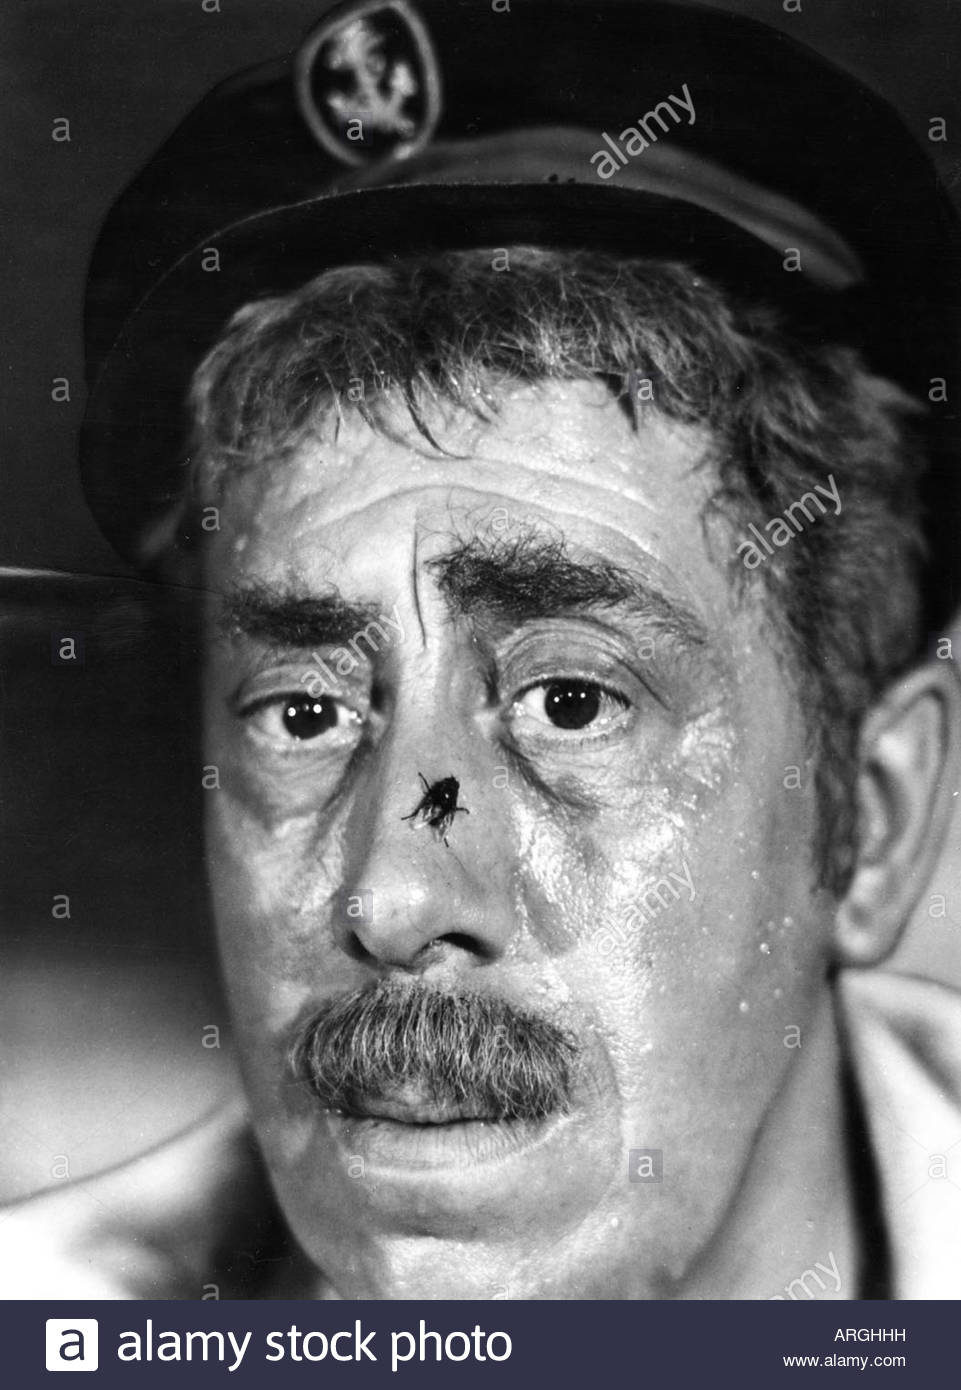 Fernandel, 8.5.1903 - 26.2.1971, French actor and singer, portrait, scene from movie, 'The Sheep Has Five Legs' - Stock Image